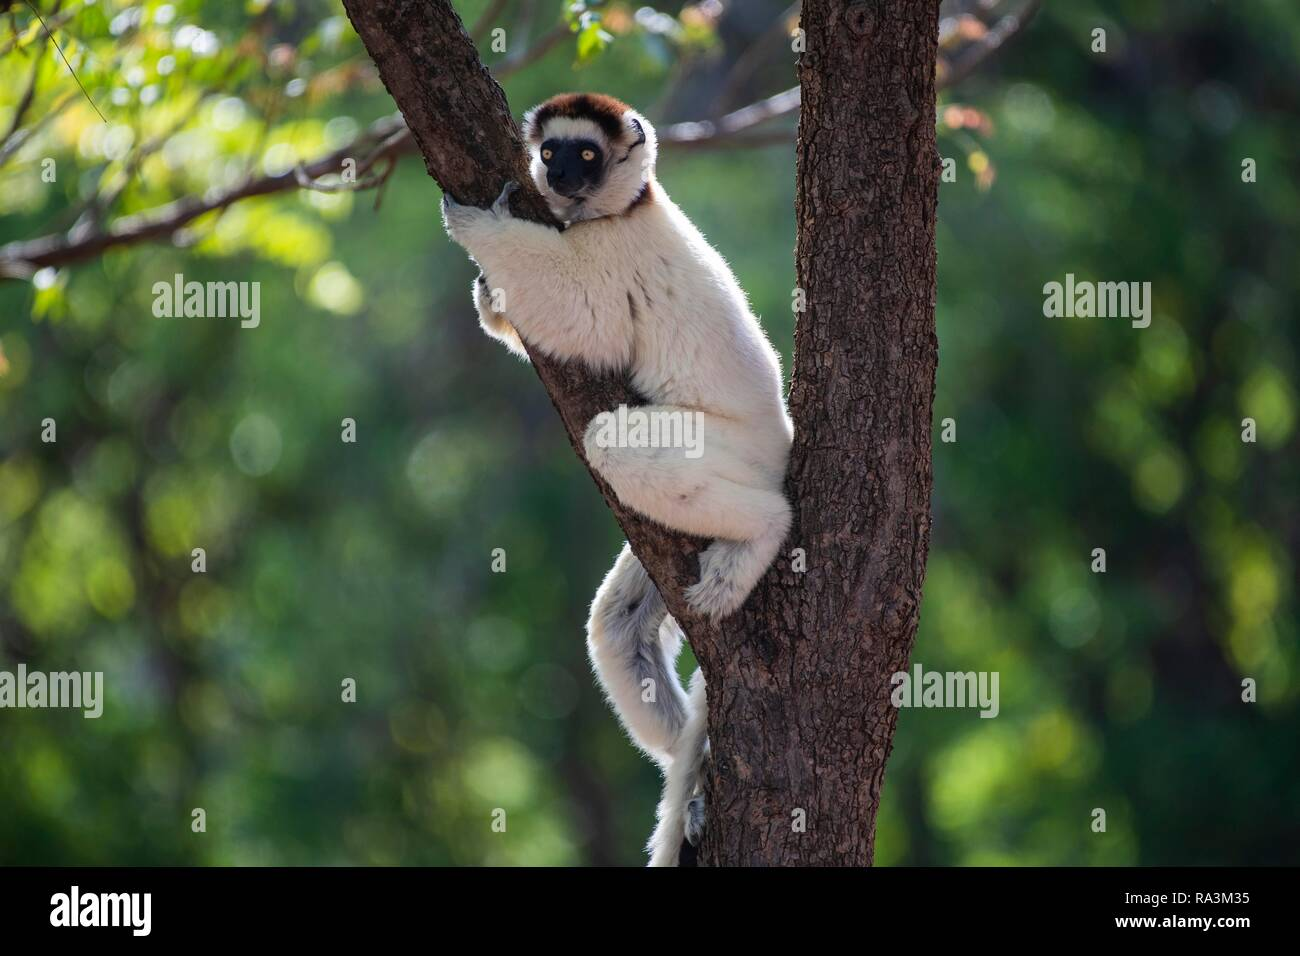 Verreaux's sifaka (Propithecus verreauxi) sits in branch fork in tree, Berenty nature reserve, Androy area, Madagascar - Stock Image